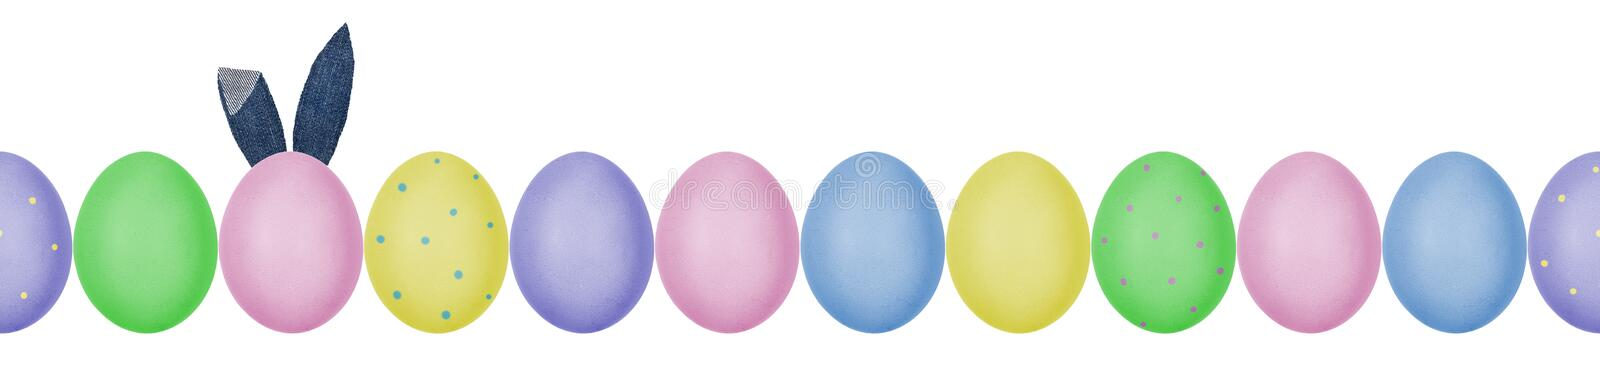 Close up photo of colorful painted Easter eggs with eggshell texture arranged in a row. One egg with denim textile bunny ears. royalty free stock photo